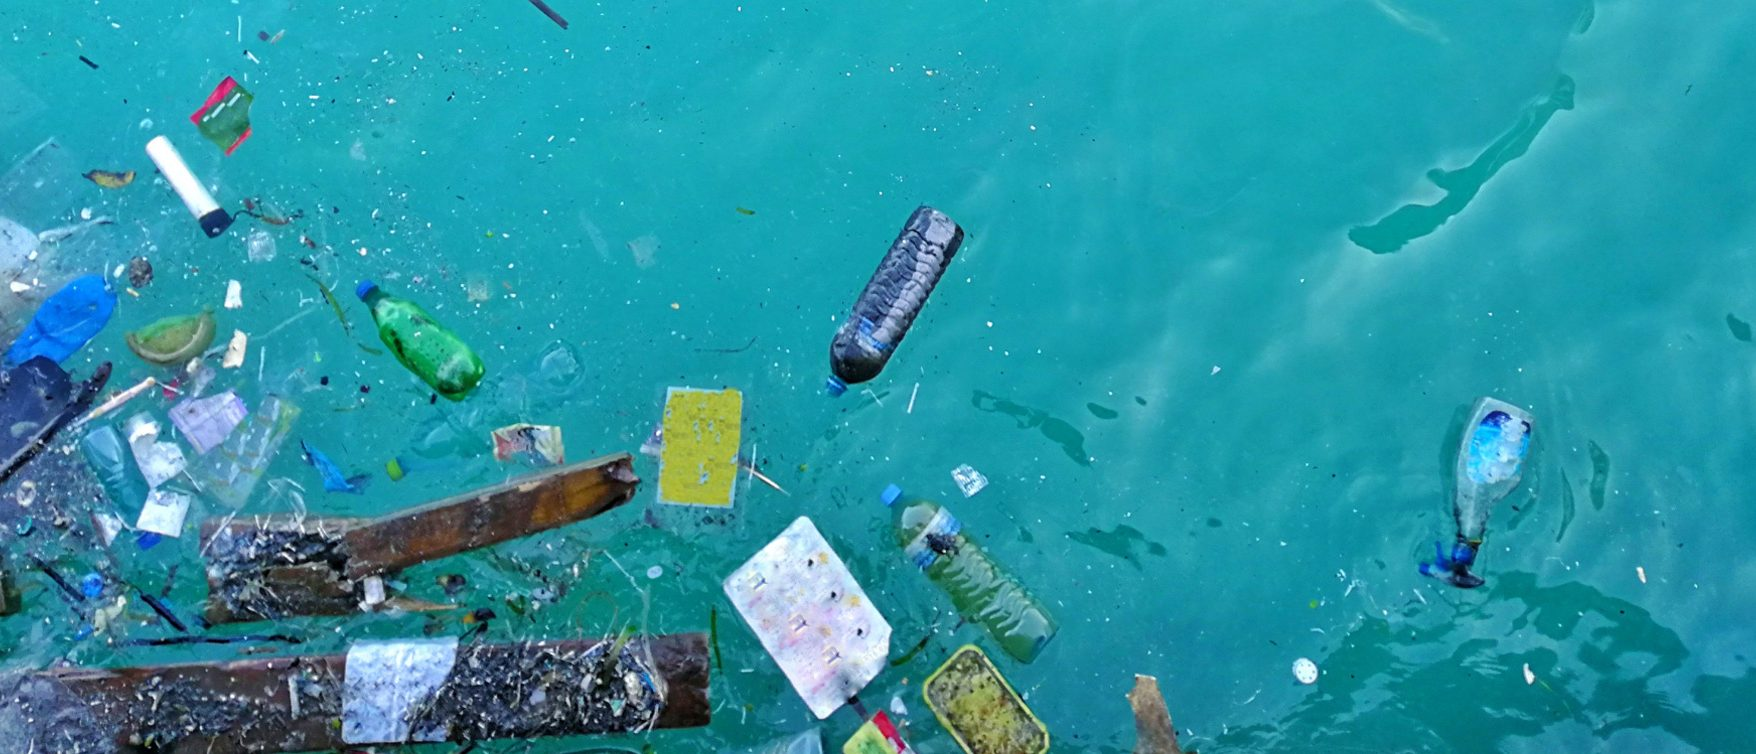 Plastics in the sea